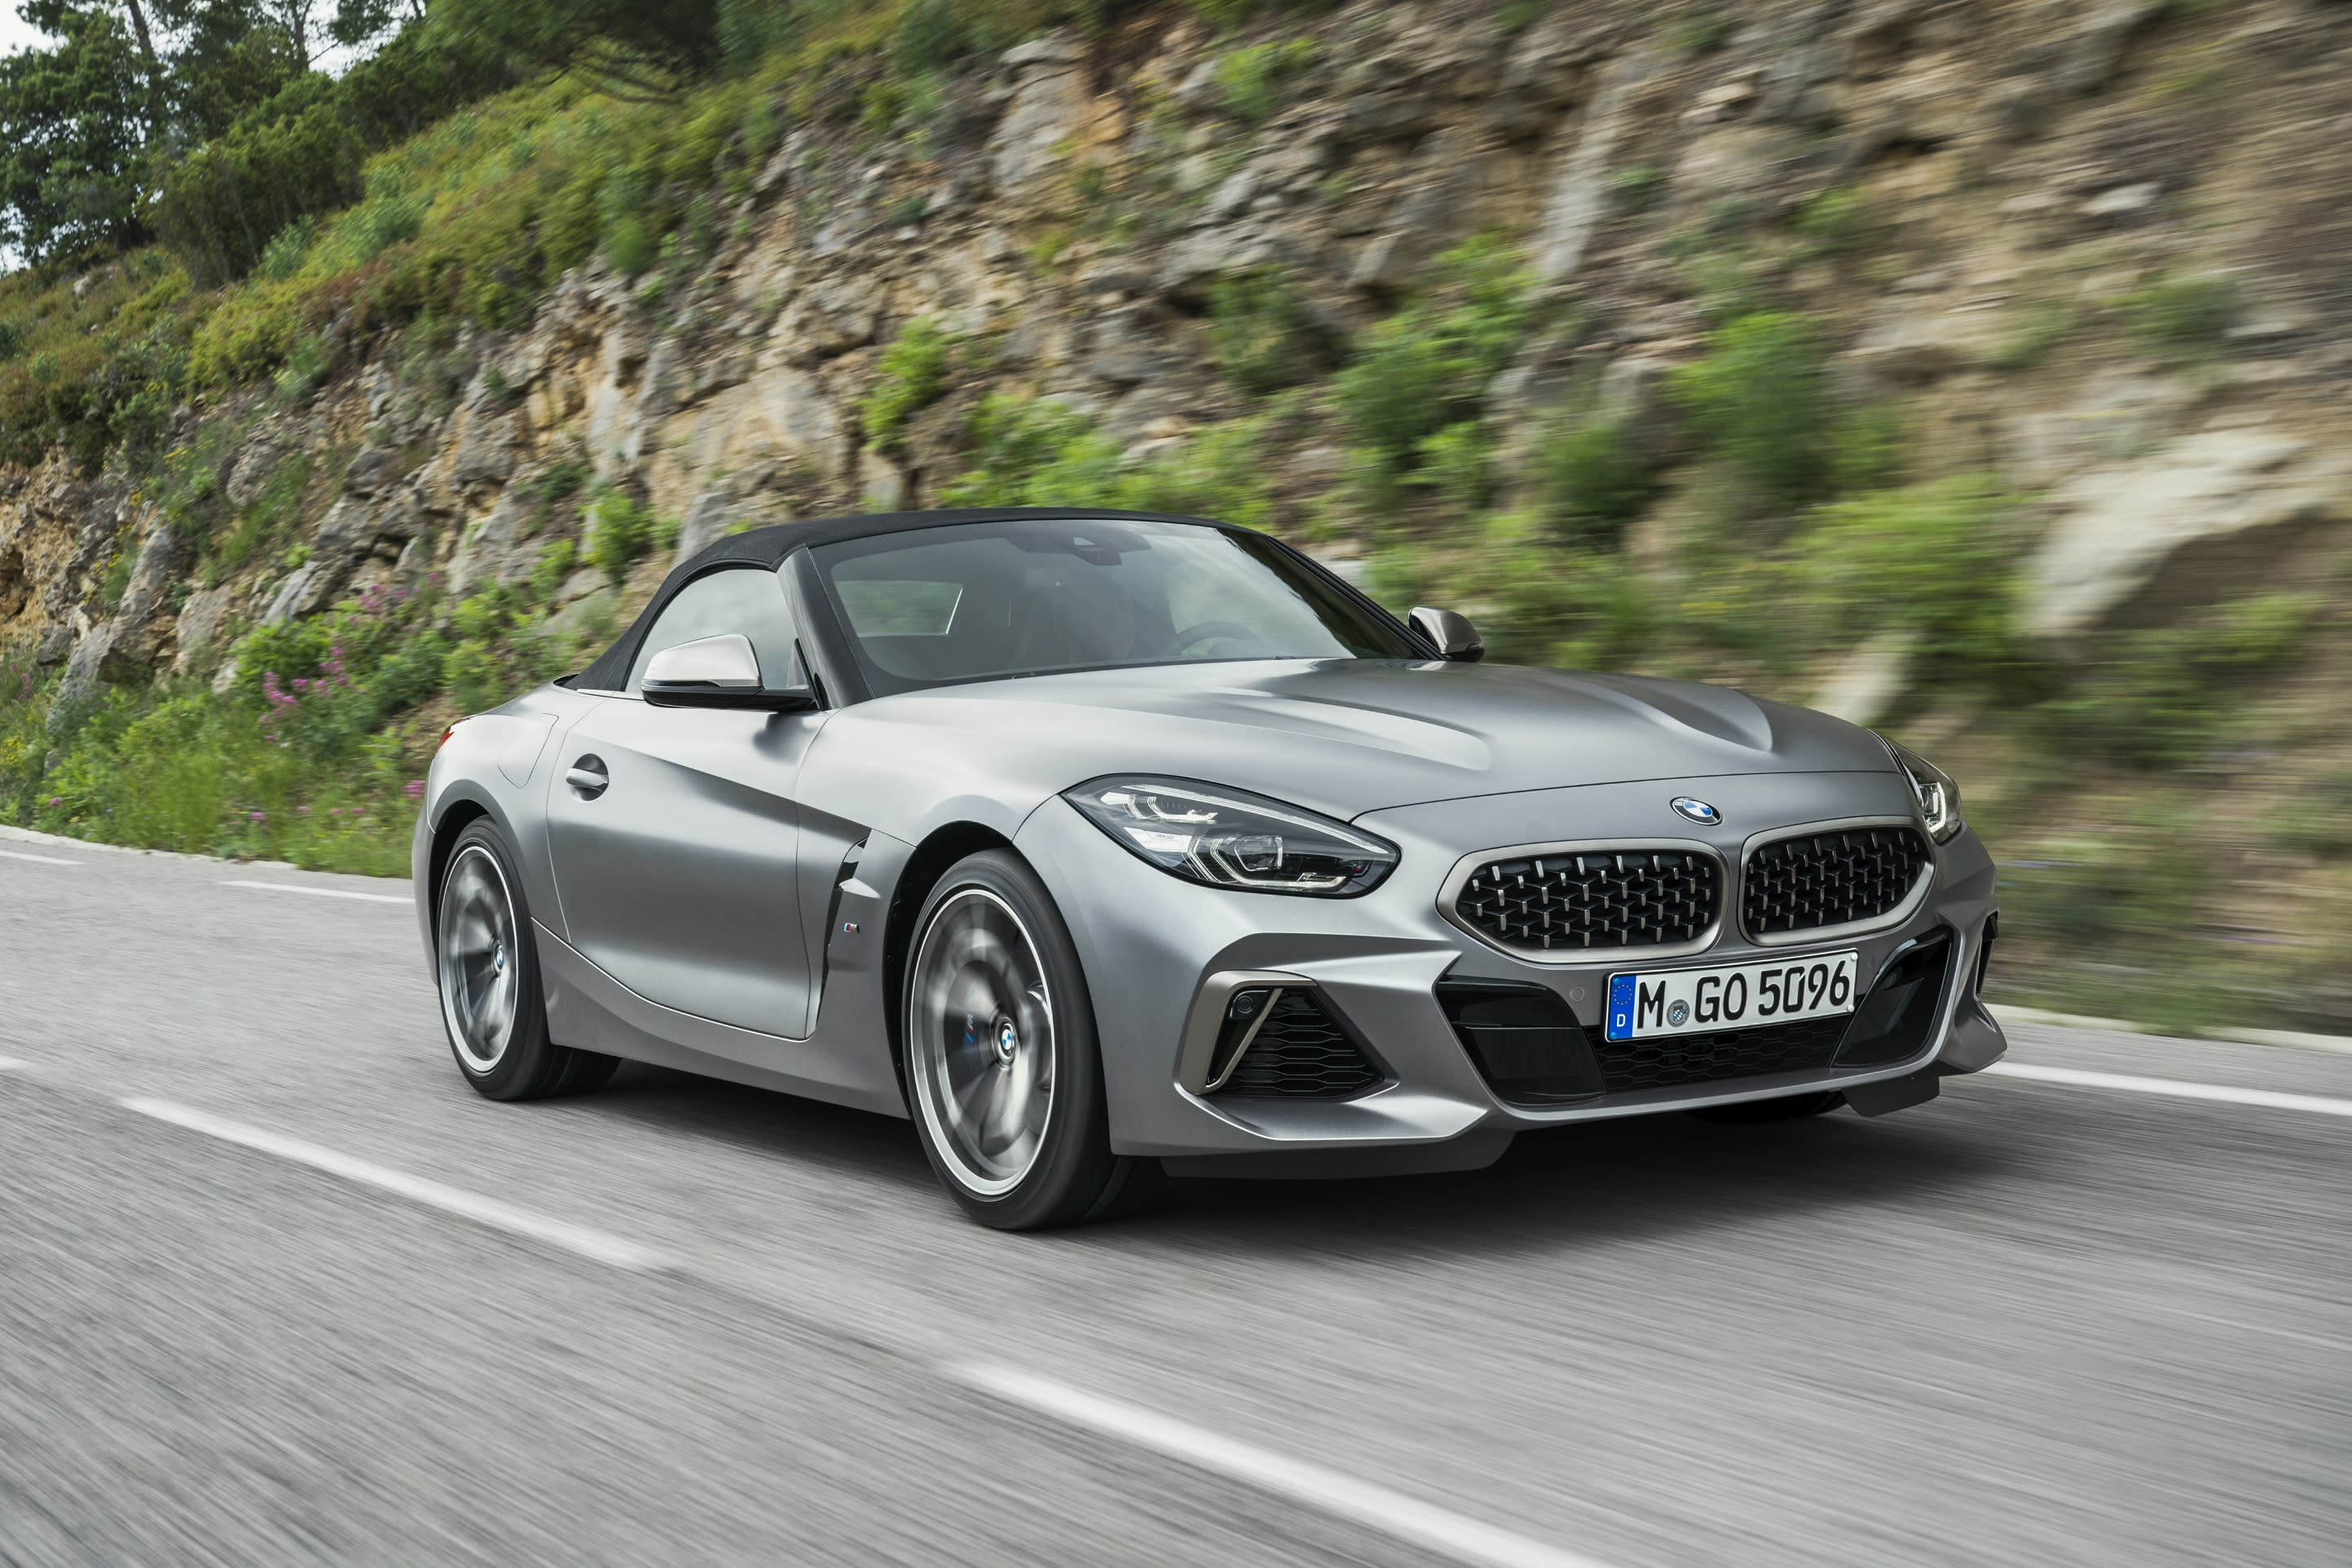 new z4 takes center stage in bmw lineup for 2018 paris motor show. Black Bedroom Furniture Sets. Home Design Ideas